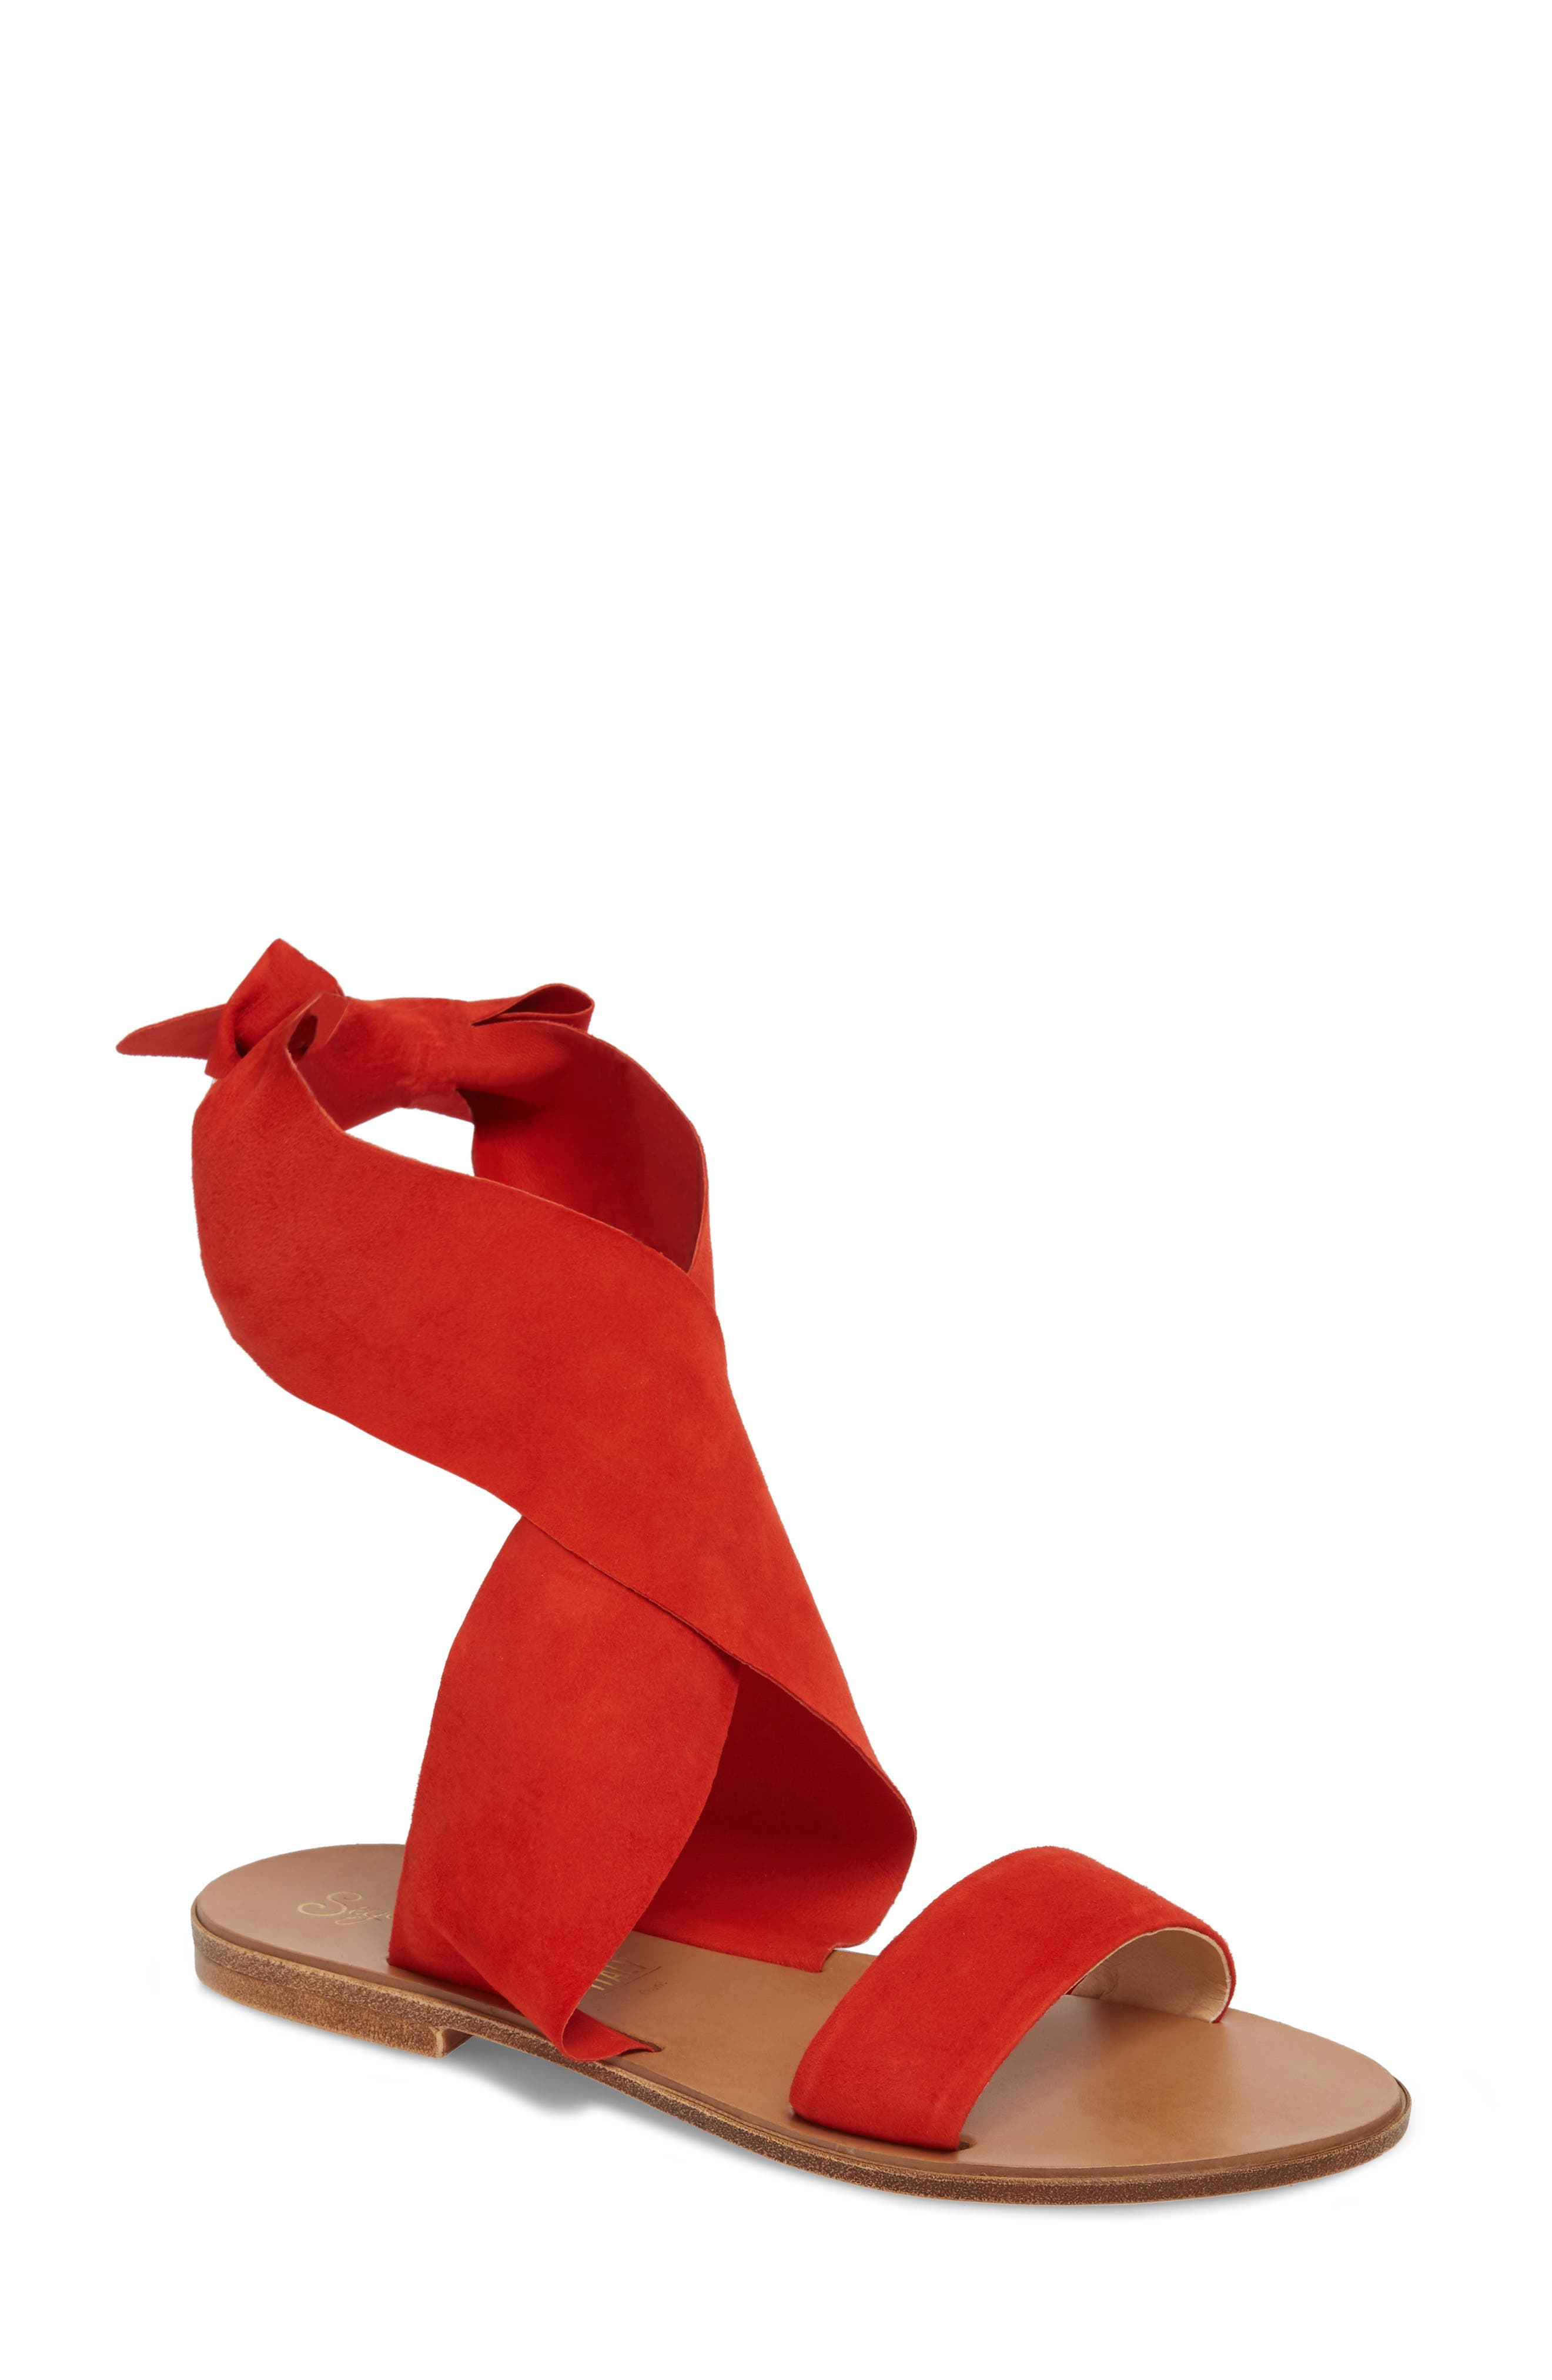 Cruisin Ankle Wrap Sandal,                             Main thumbnail 1, color,                             Red Suede